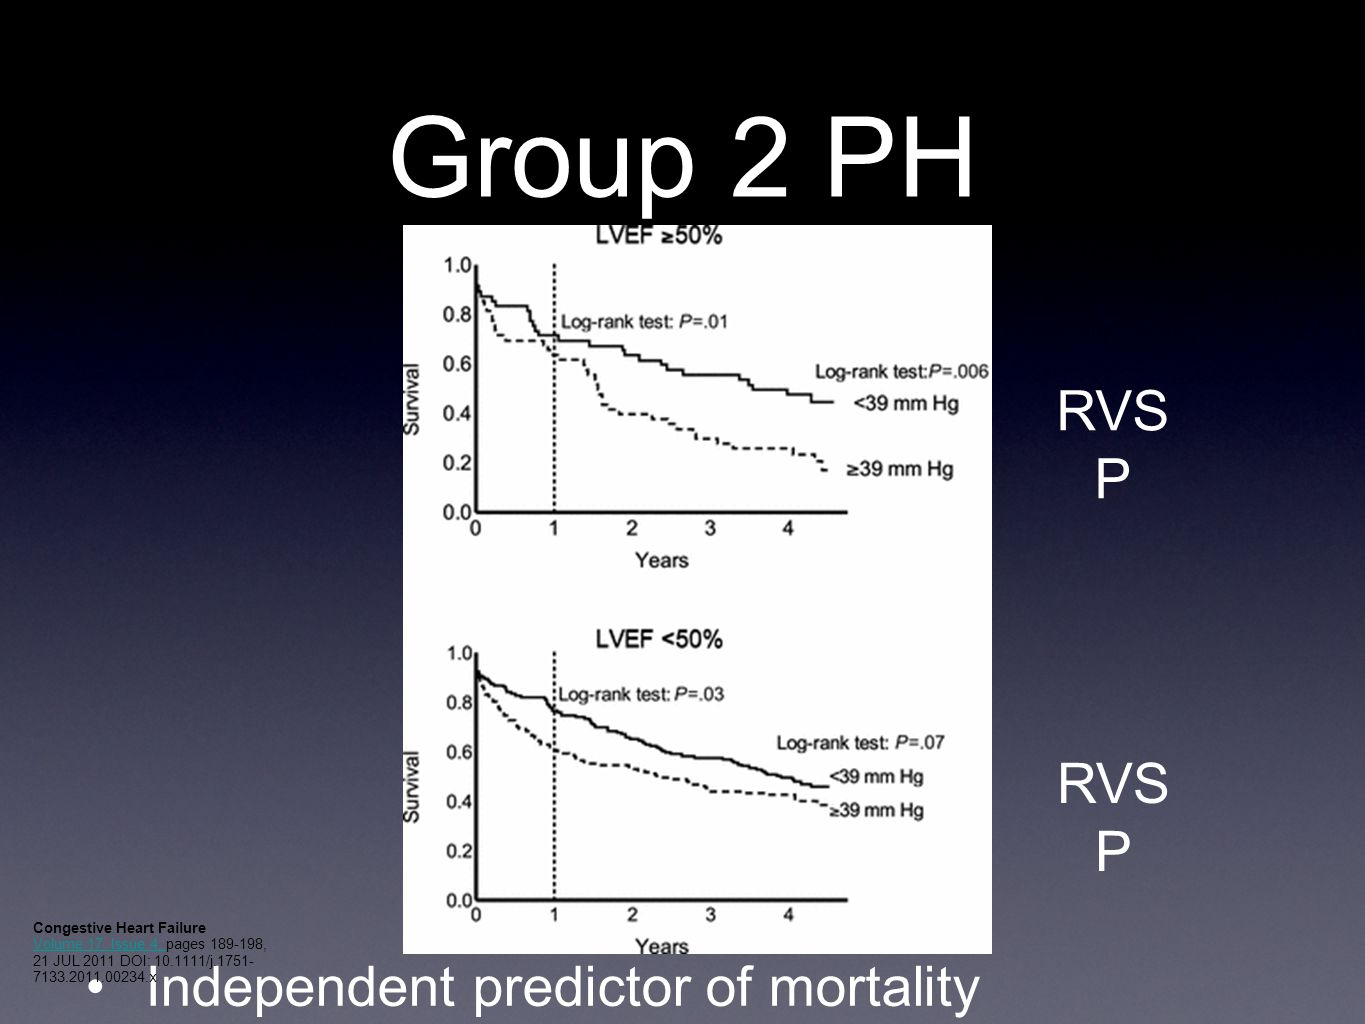 Group 2 PH RVSP RVSP Independent predictor of mortality